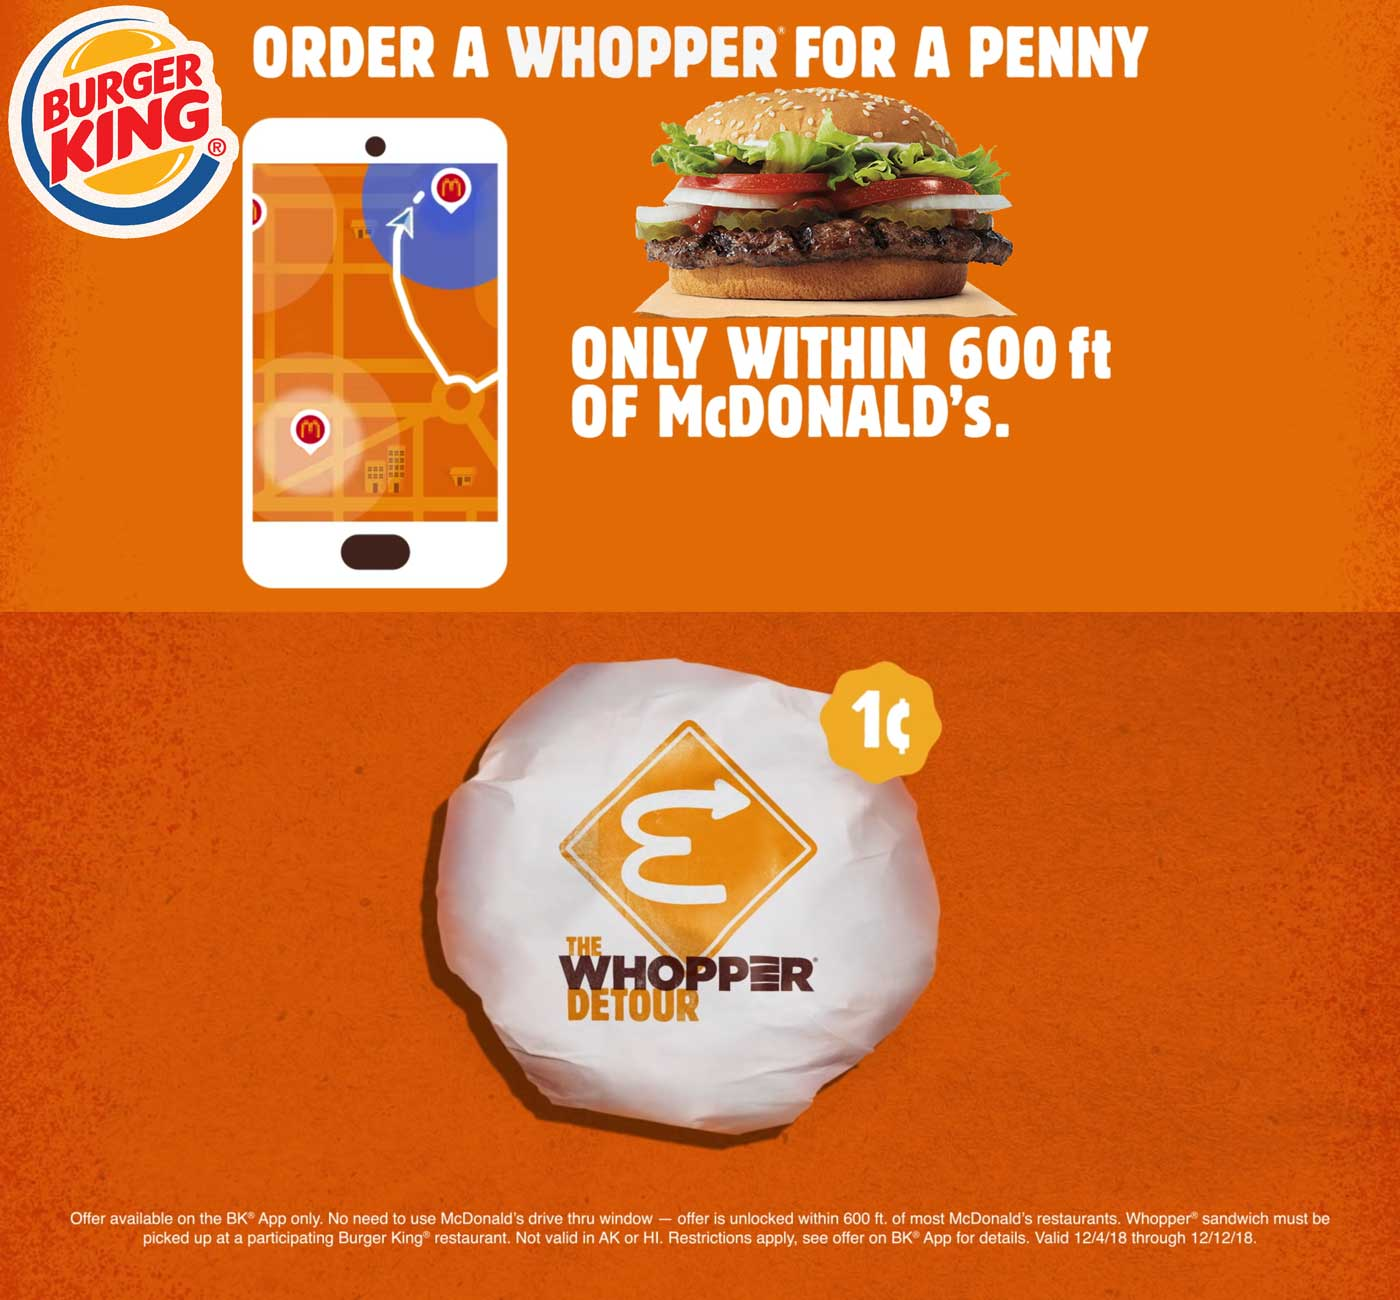 Burger King Coupon January 2019 Whopper for a penny via Burger King app